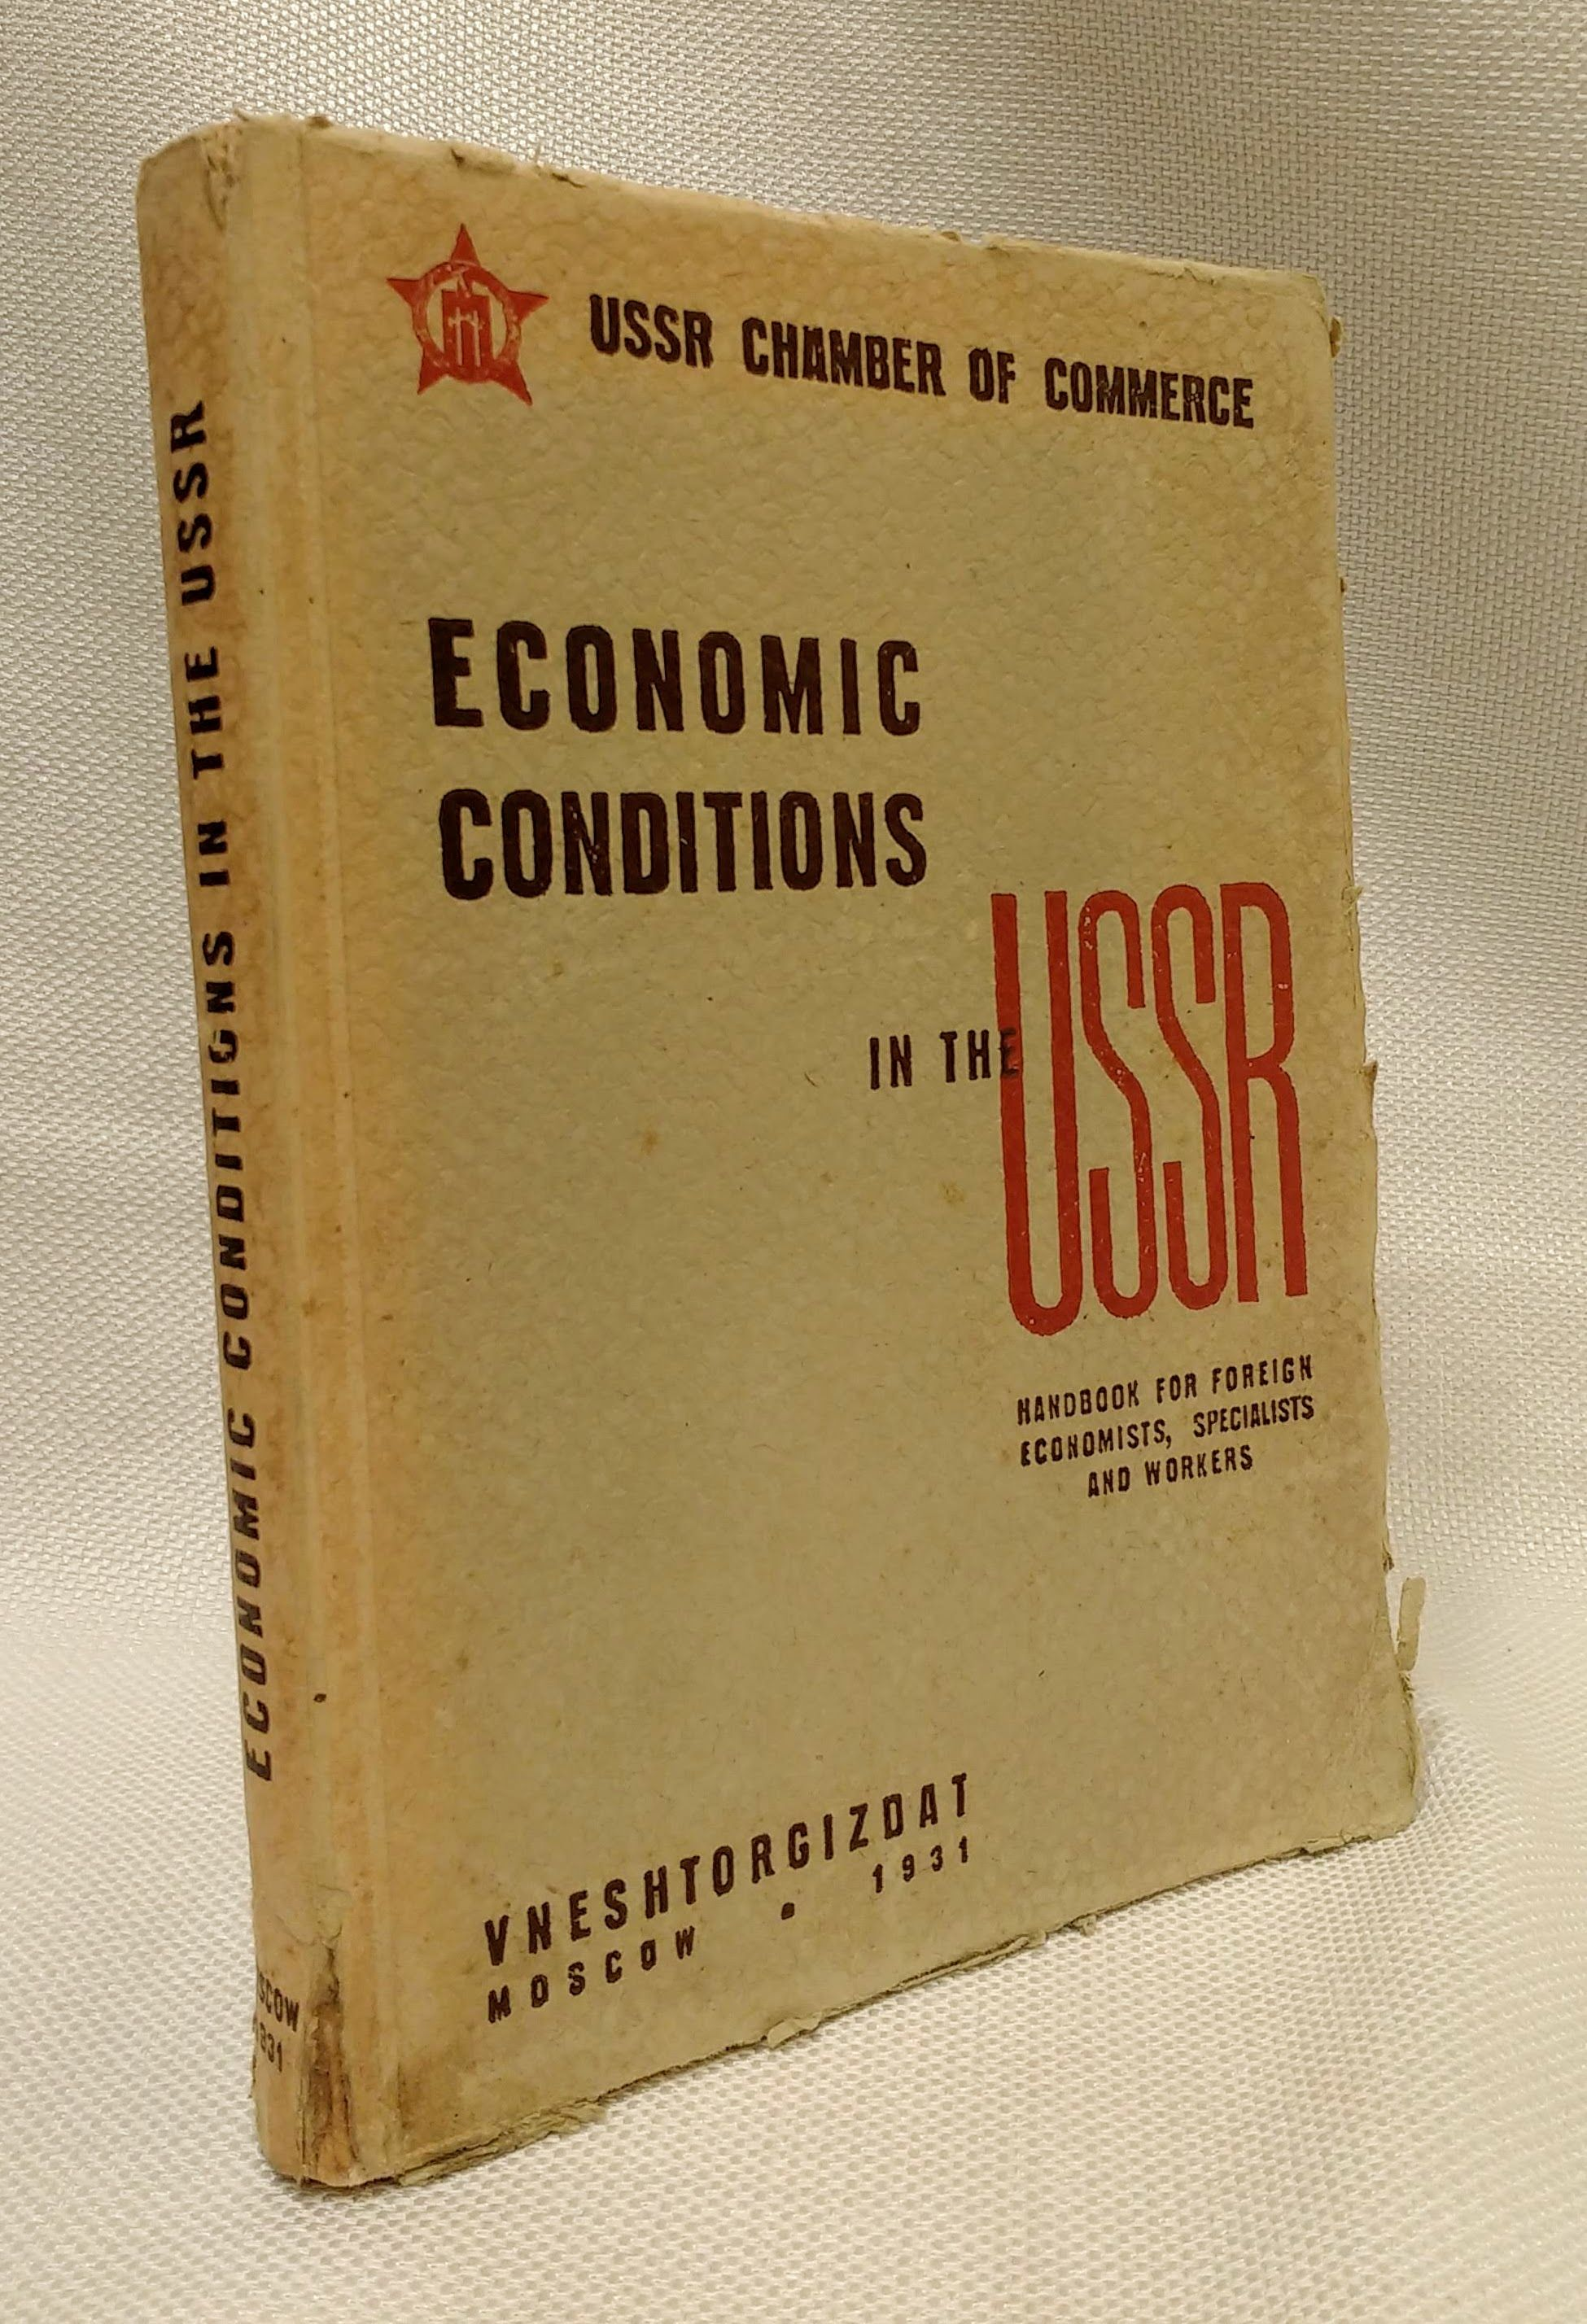 Economic Conditions in the USSR: Handbook for Foreign Economists, Specialists and Workers., USSR Chamber of Commerce